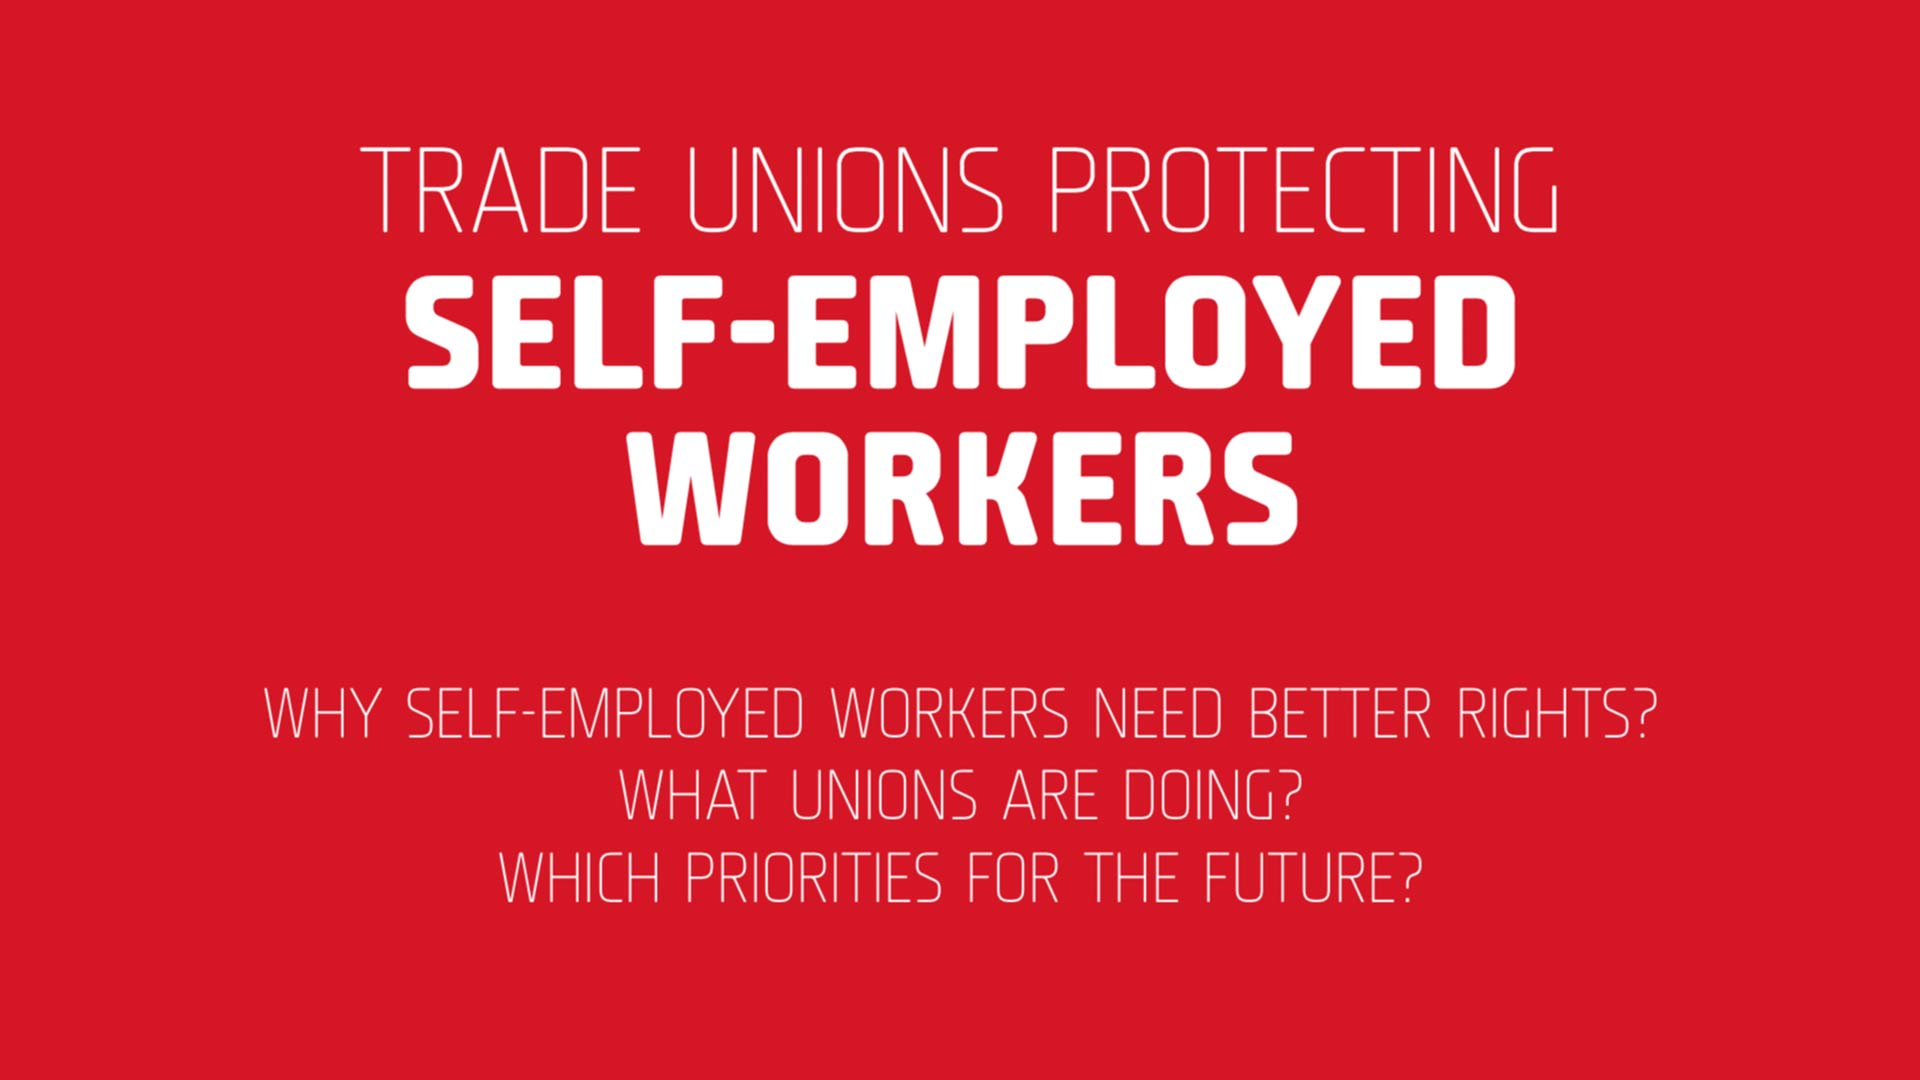 Fairness Rocks News TRADE UNIONS PROTECTING SELF-EMPLOYED WORKERS